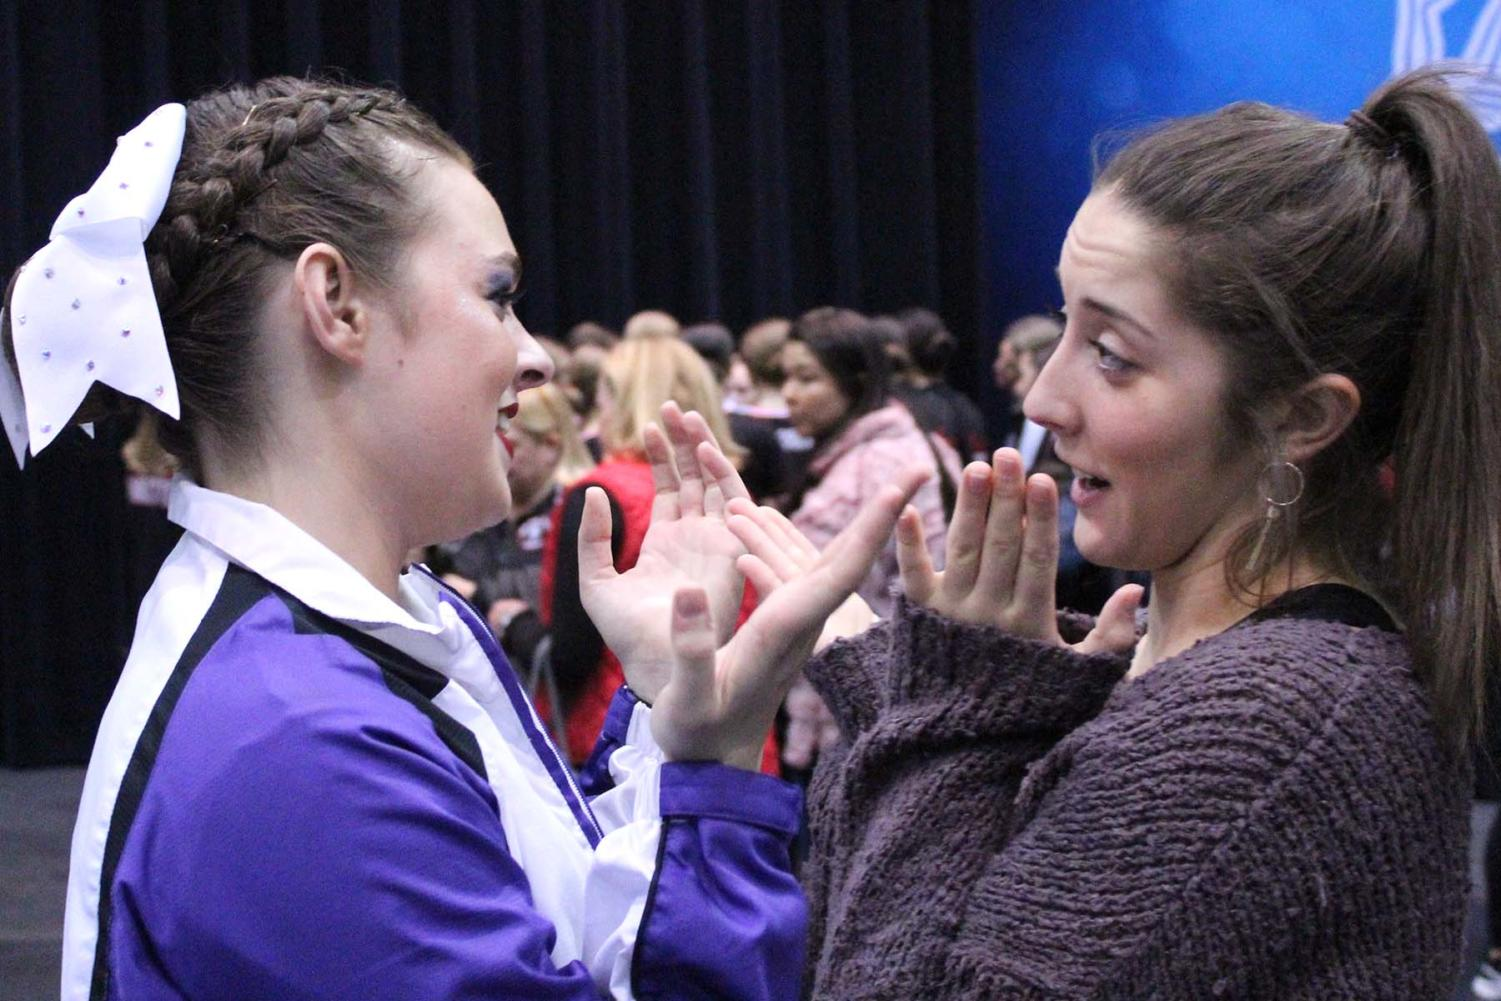 Senior Chandler Rawson and alum and former Captain Mary Evans discuss the performance after the competition.